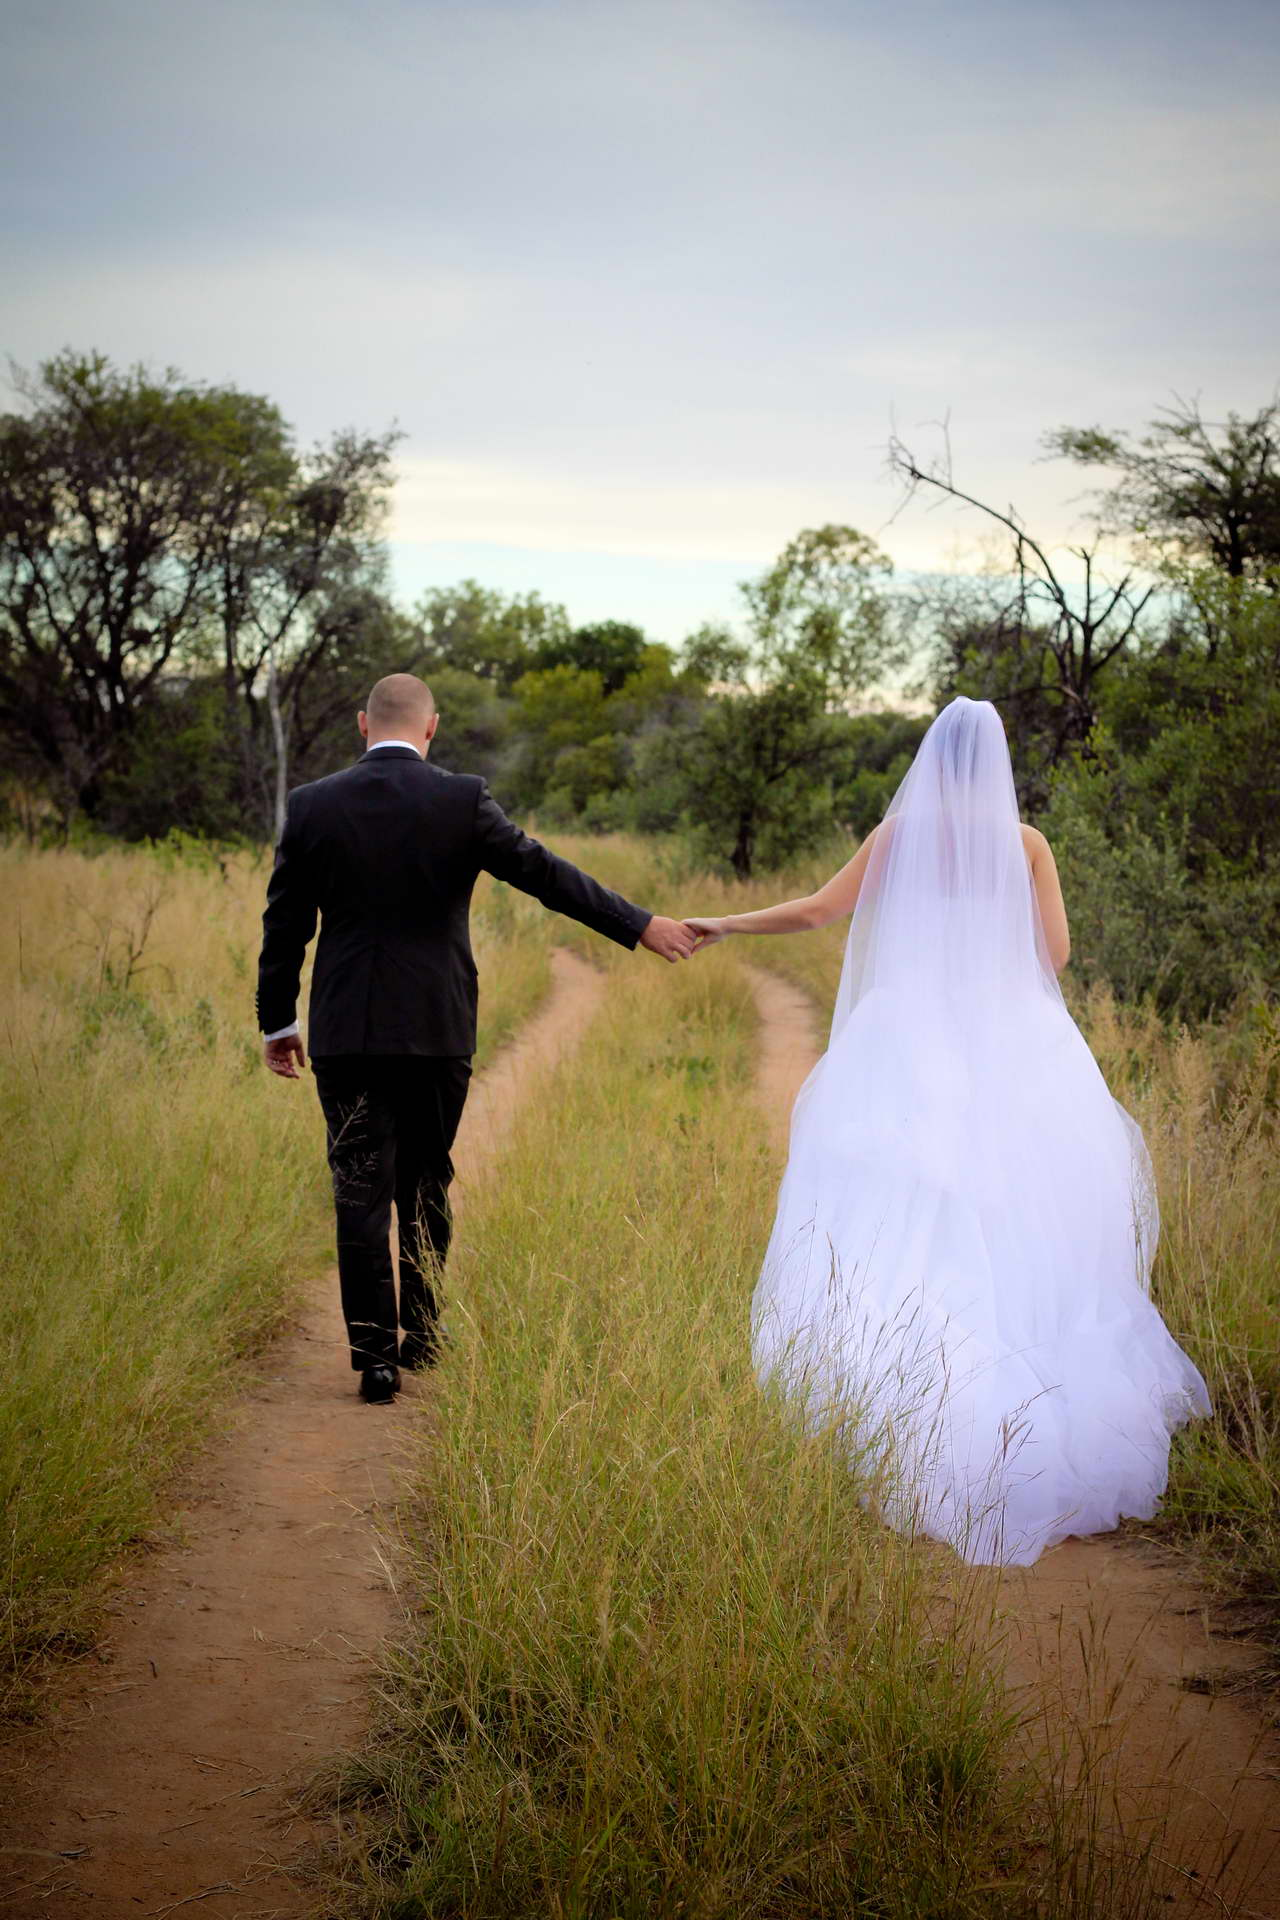 Weddings at Thandeka Lodge and Spa in Bela Bela, the perfect wedding venue and with game lodge accommodation near Kruger National Park